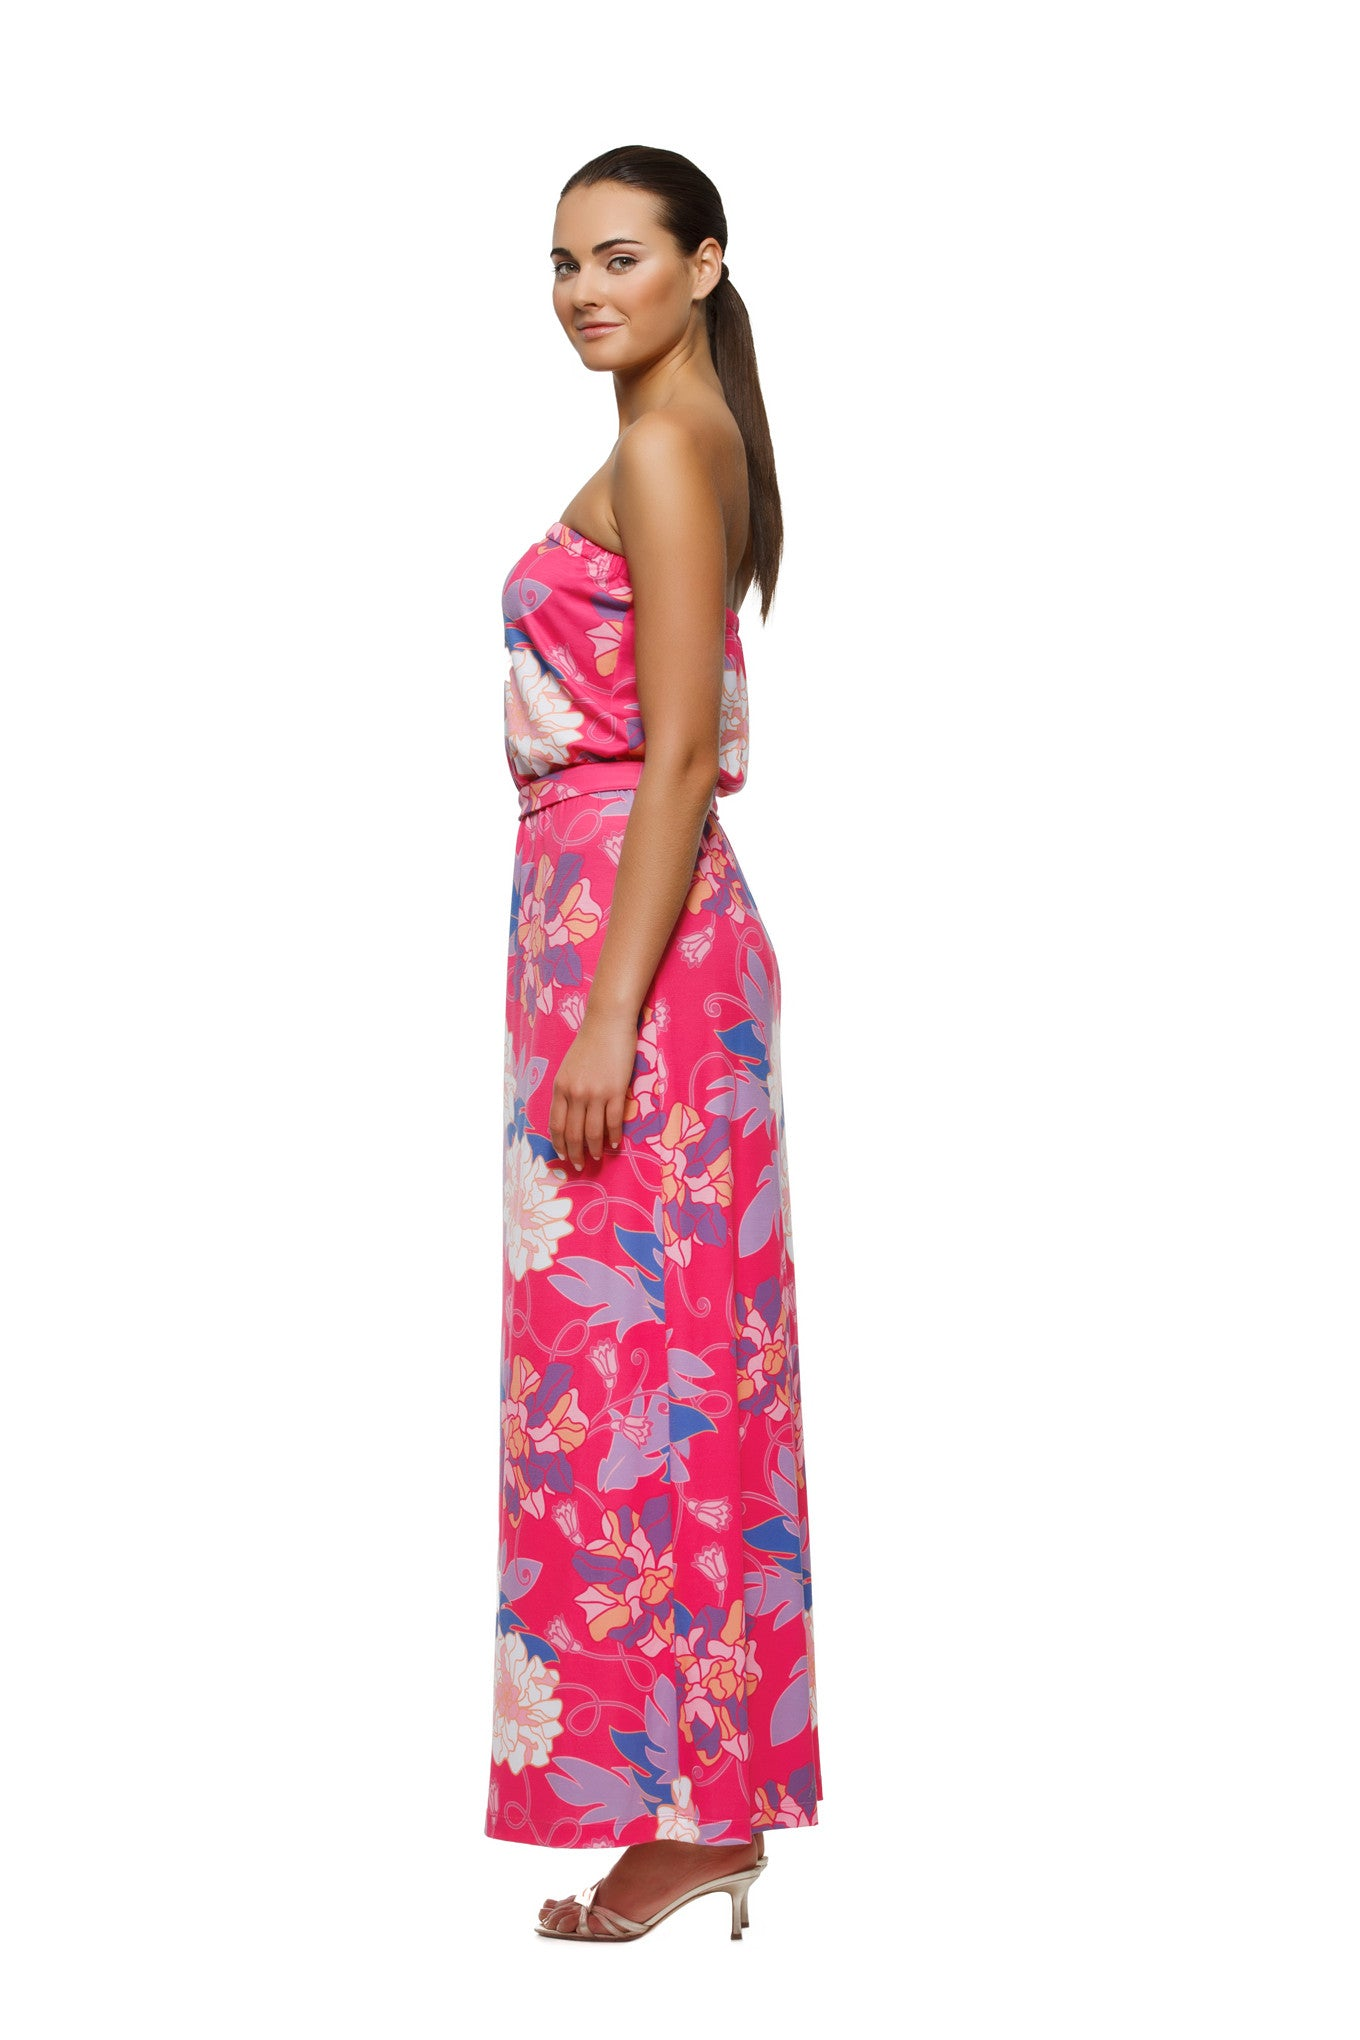 Remy Strapless Maxi Dress in Pink Hawaiian - Rulon Reed c3b8a13f1